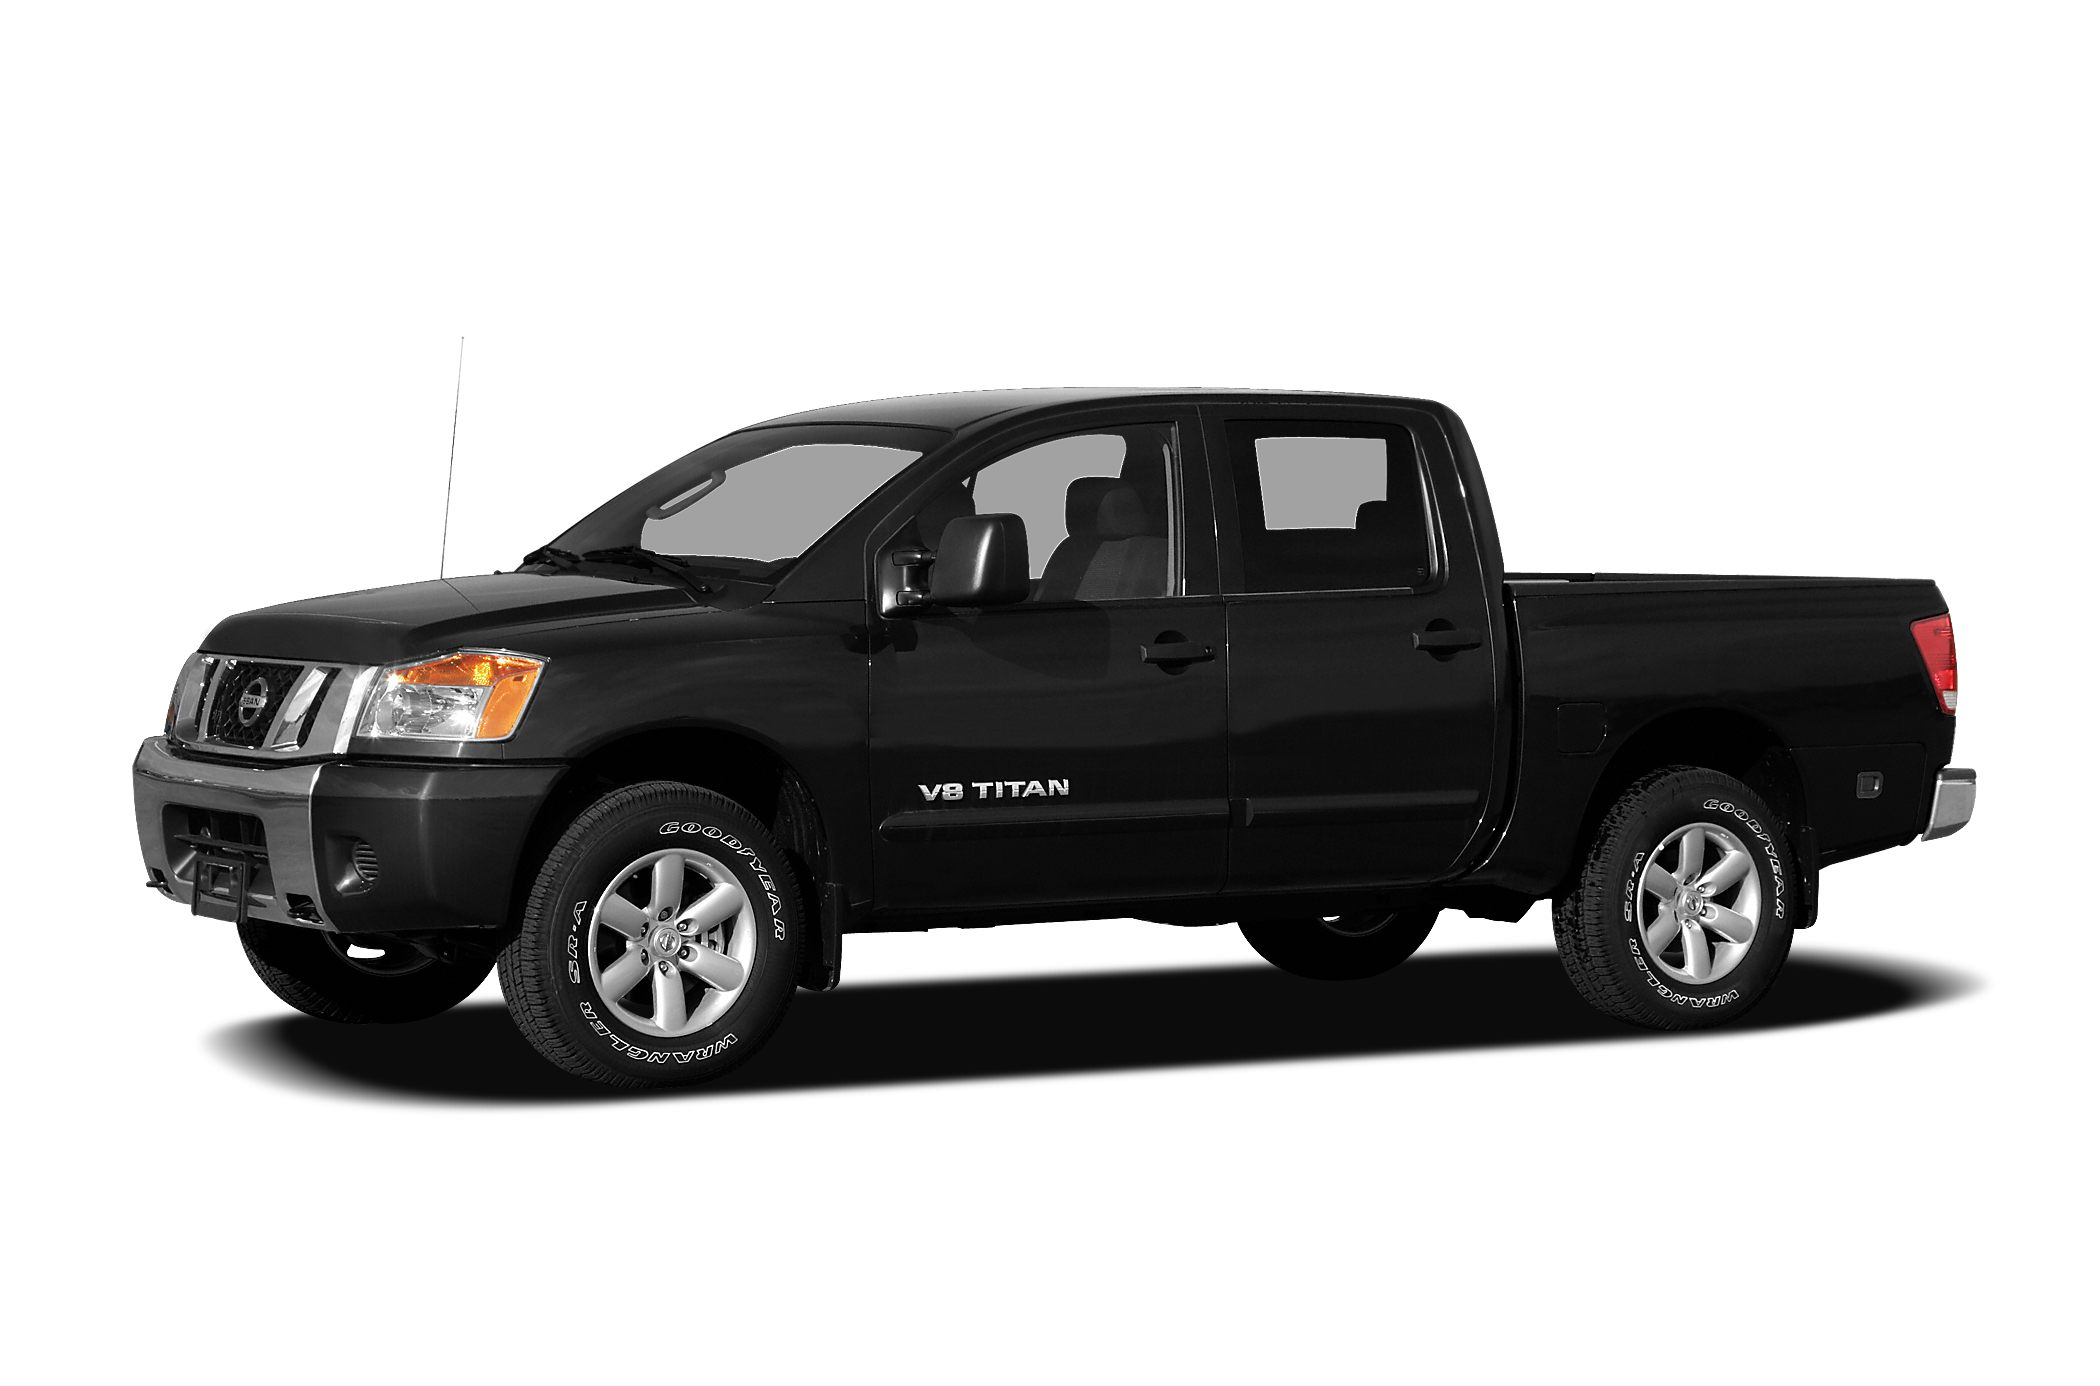 2010 Nissan Titan LE Crew Cab Pickup for sale in Gonzales for $24,454 with 15,553 miles.